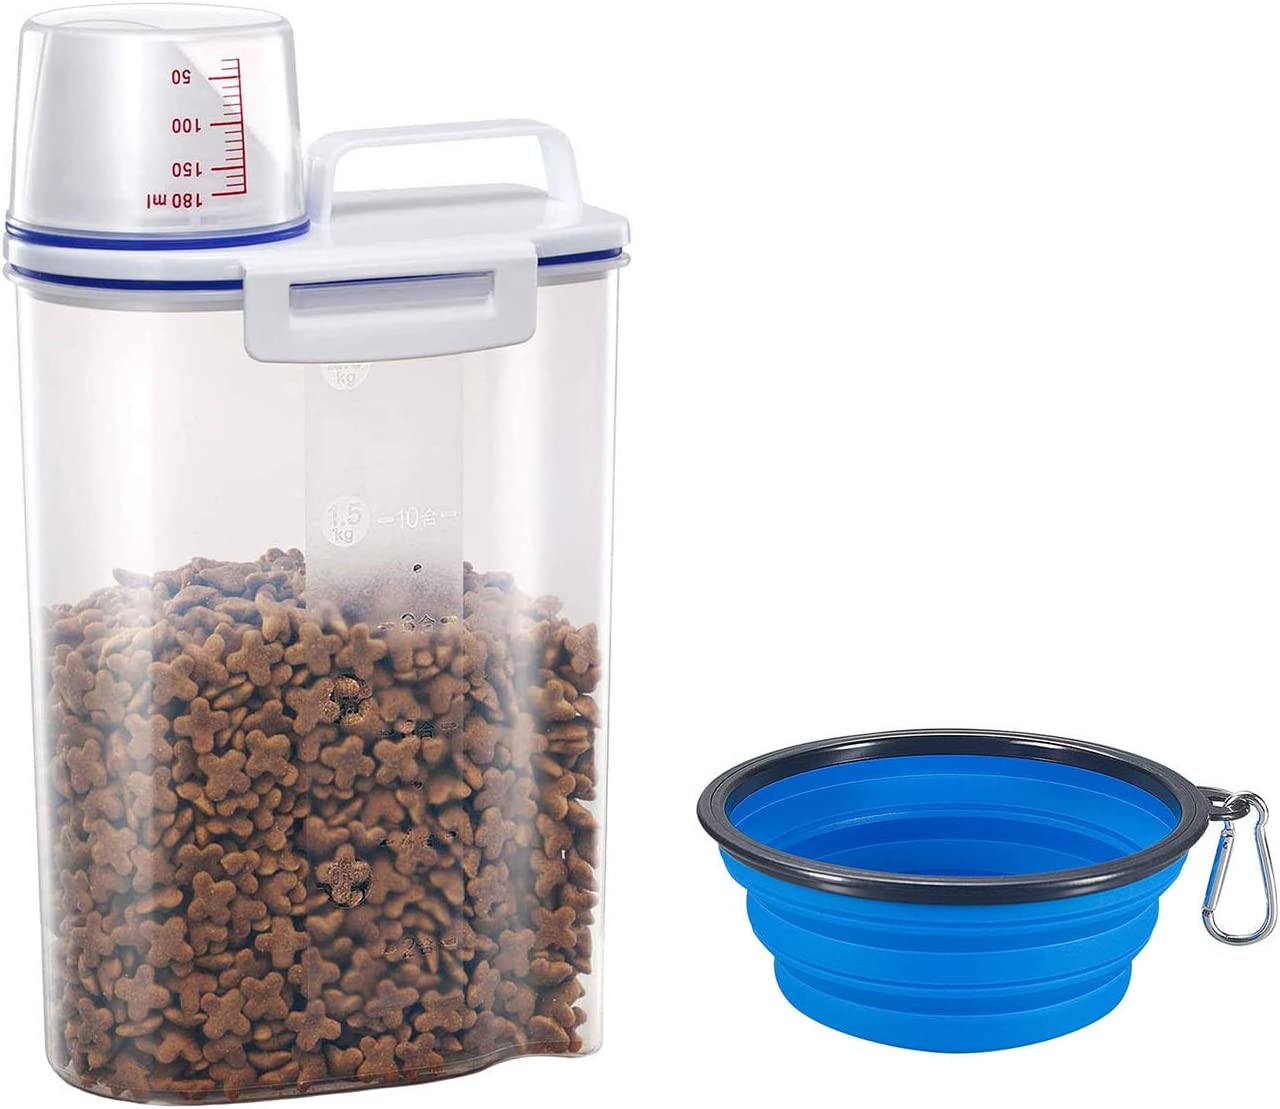 2 in 1 YRA Airtight Dog Food Storage Container with Portable Collapsible Bowl, Cat Food Container with Large Pour Spout, Pet Food Storage Containers with Measuring Cup, Food Dispenser for Regular Food